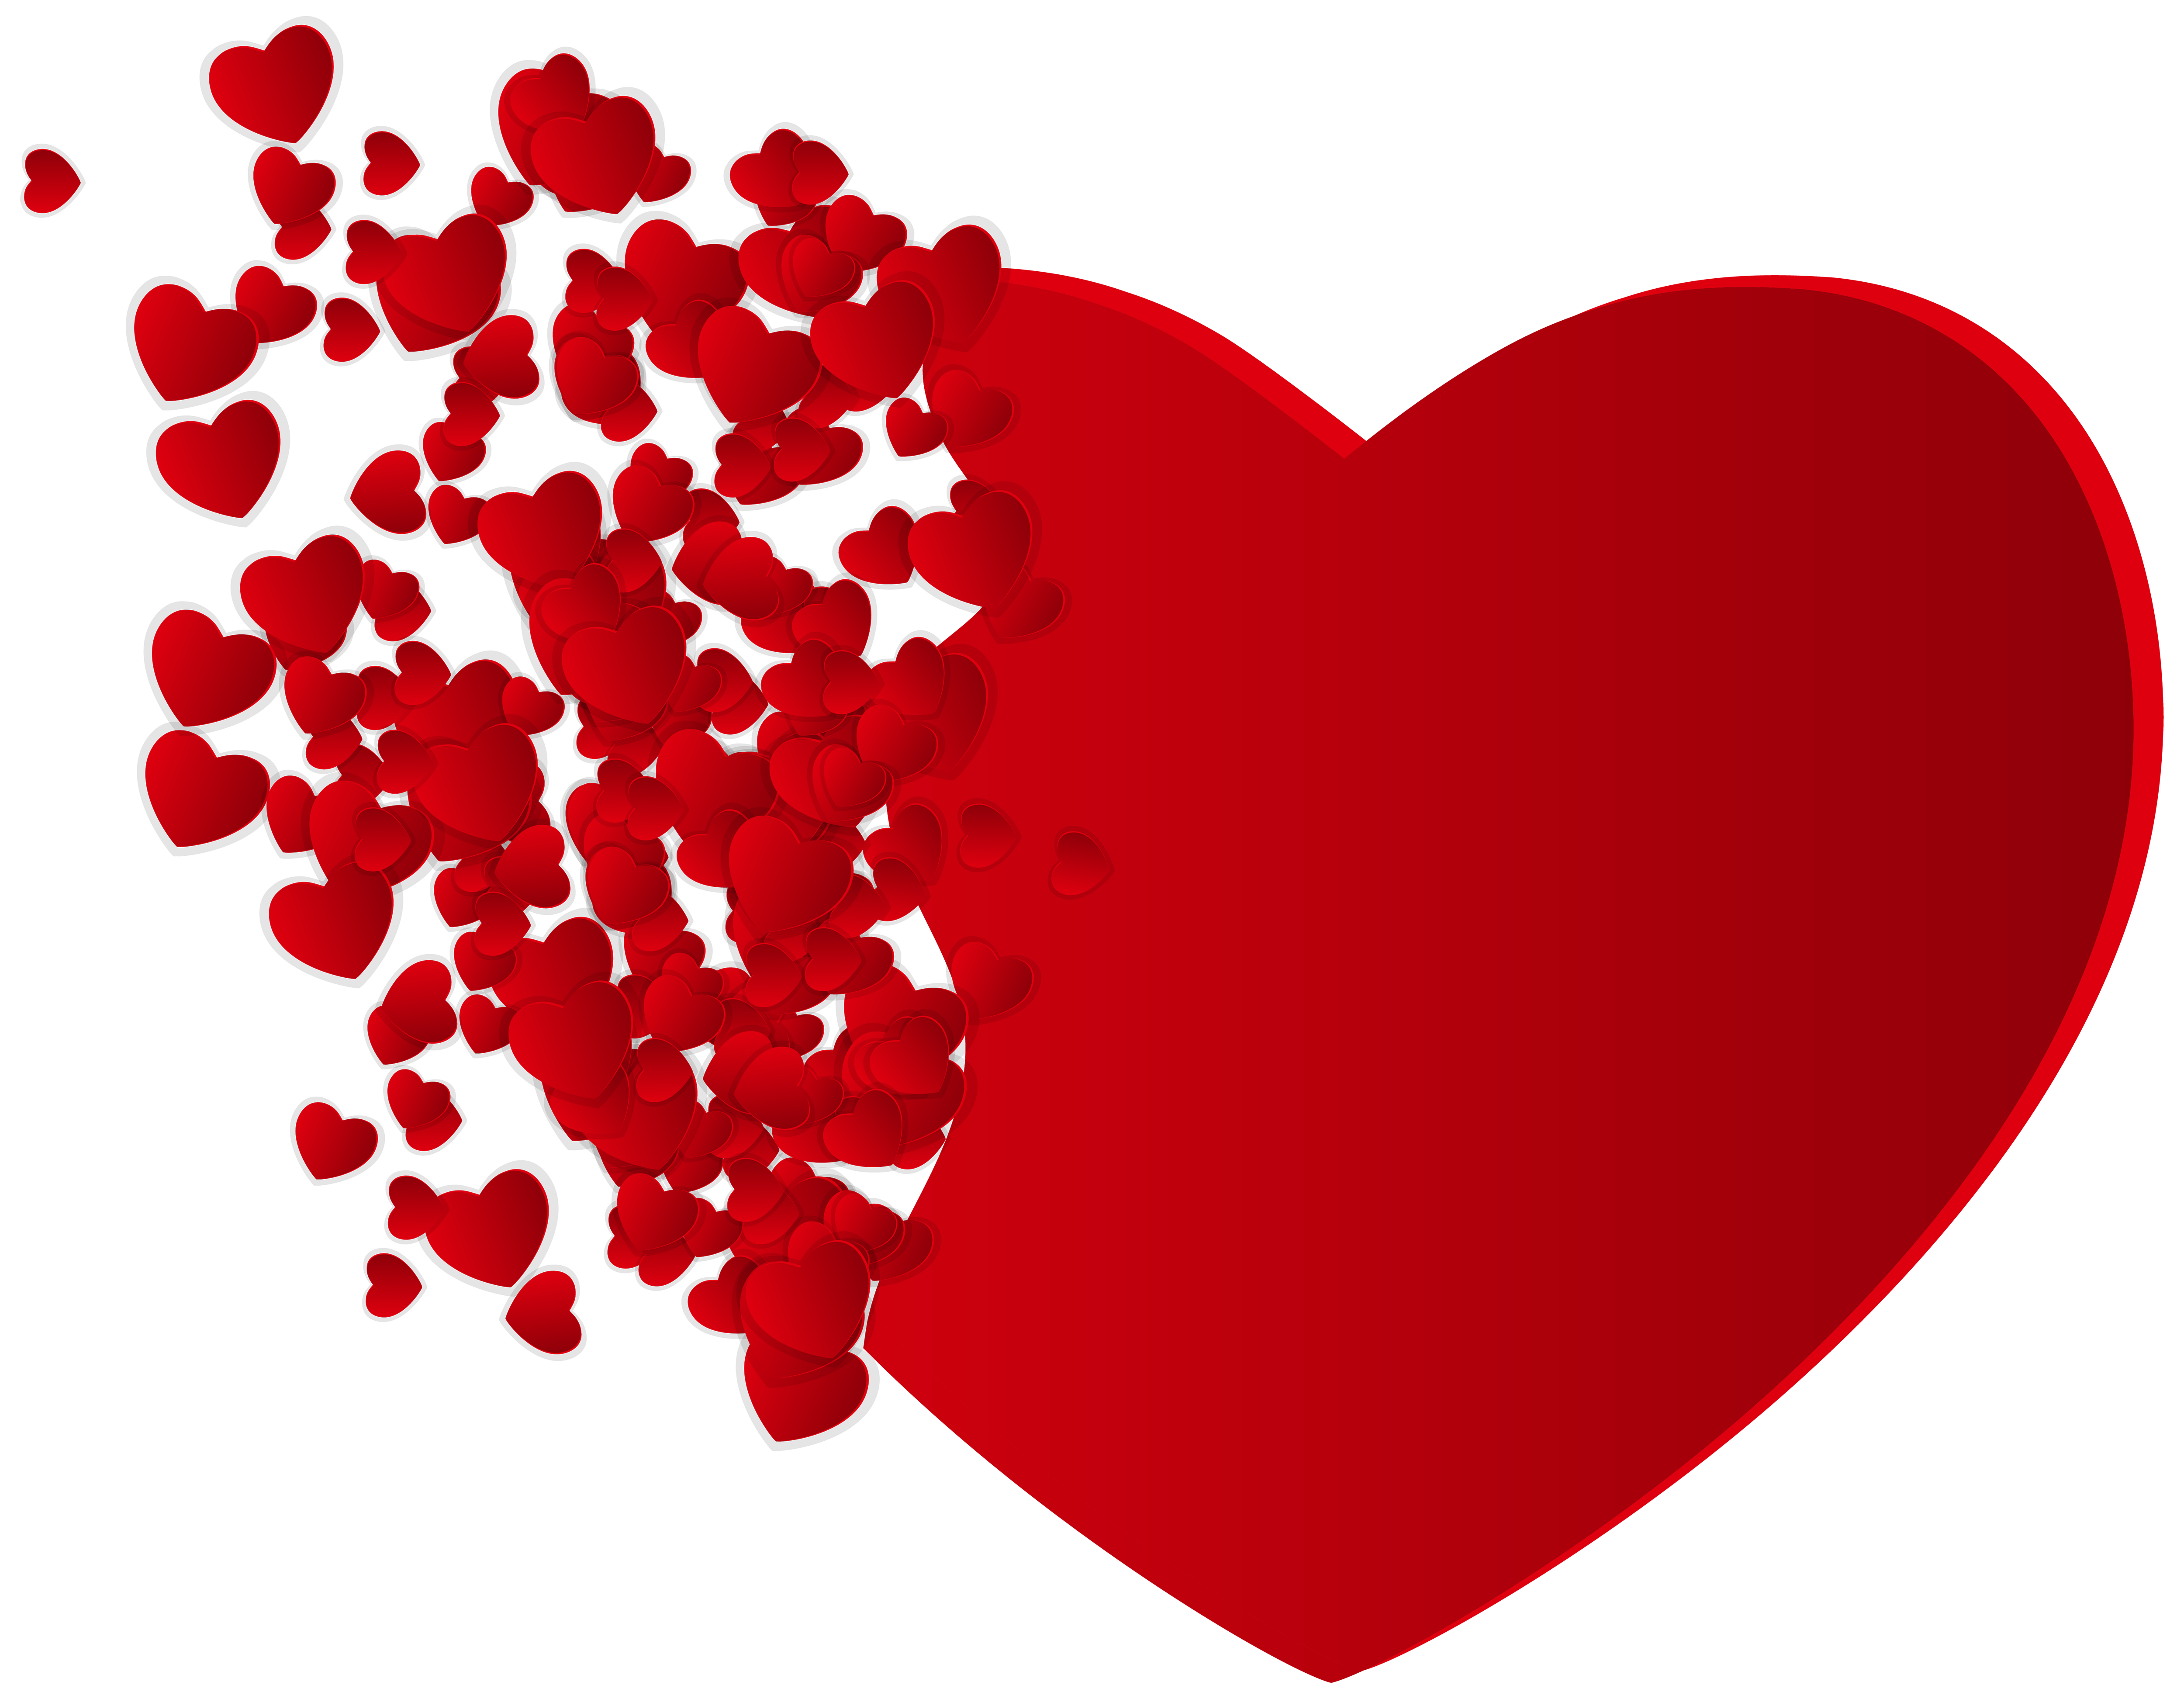 Sunglasses clipart red heart. Of hearts png best